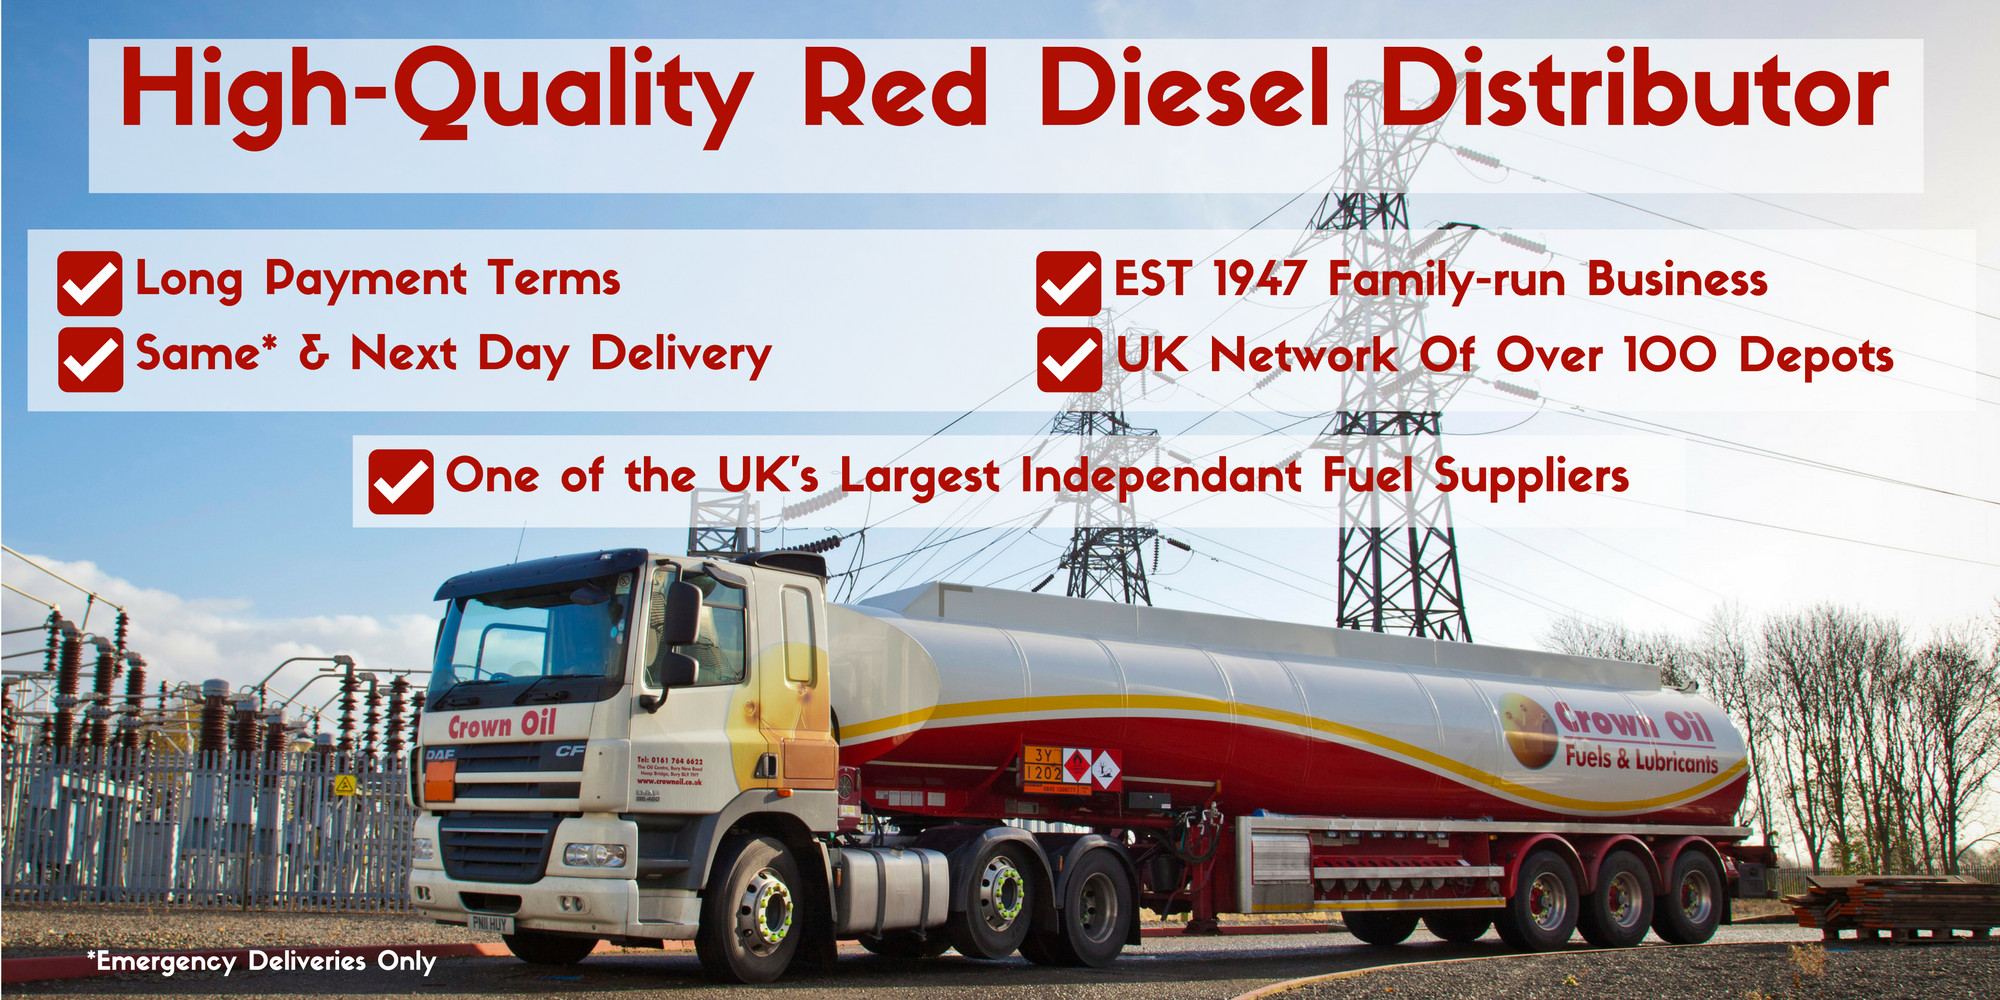 High-Quality Red Diesel Distributor